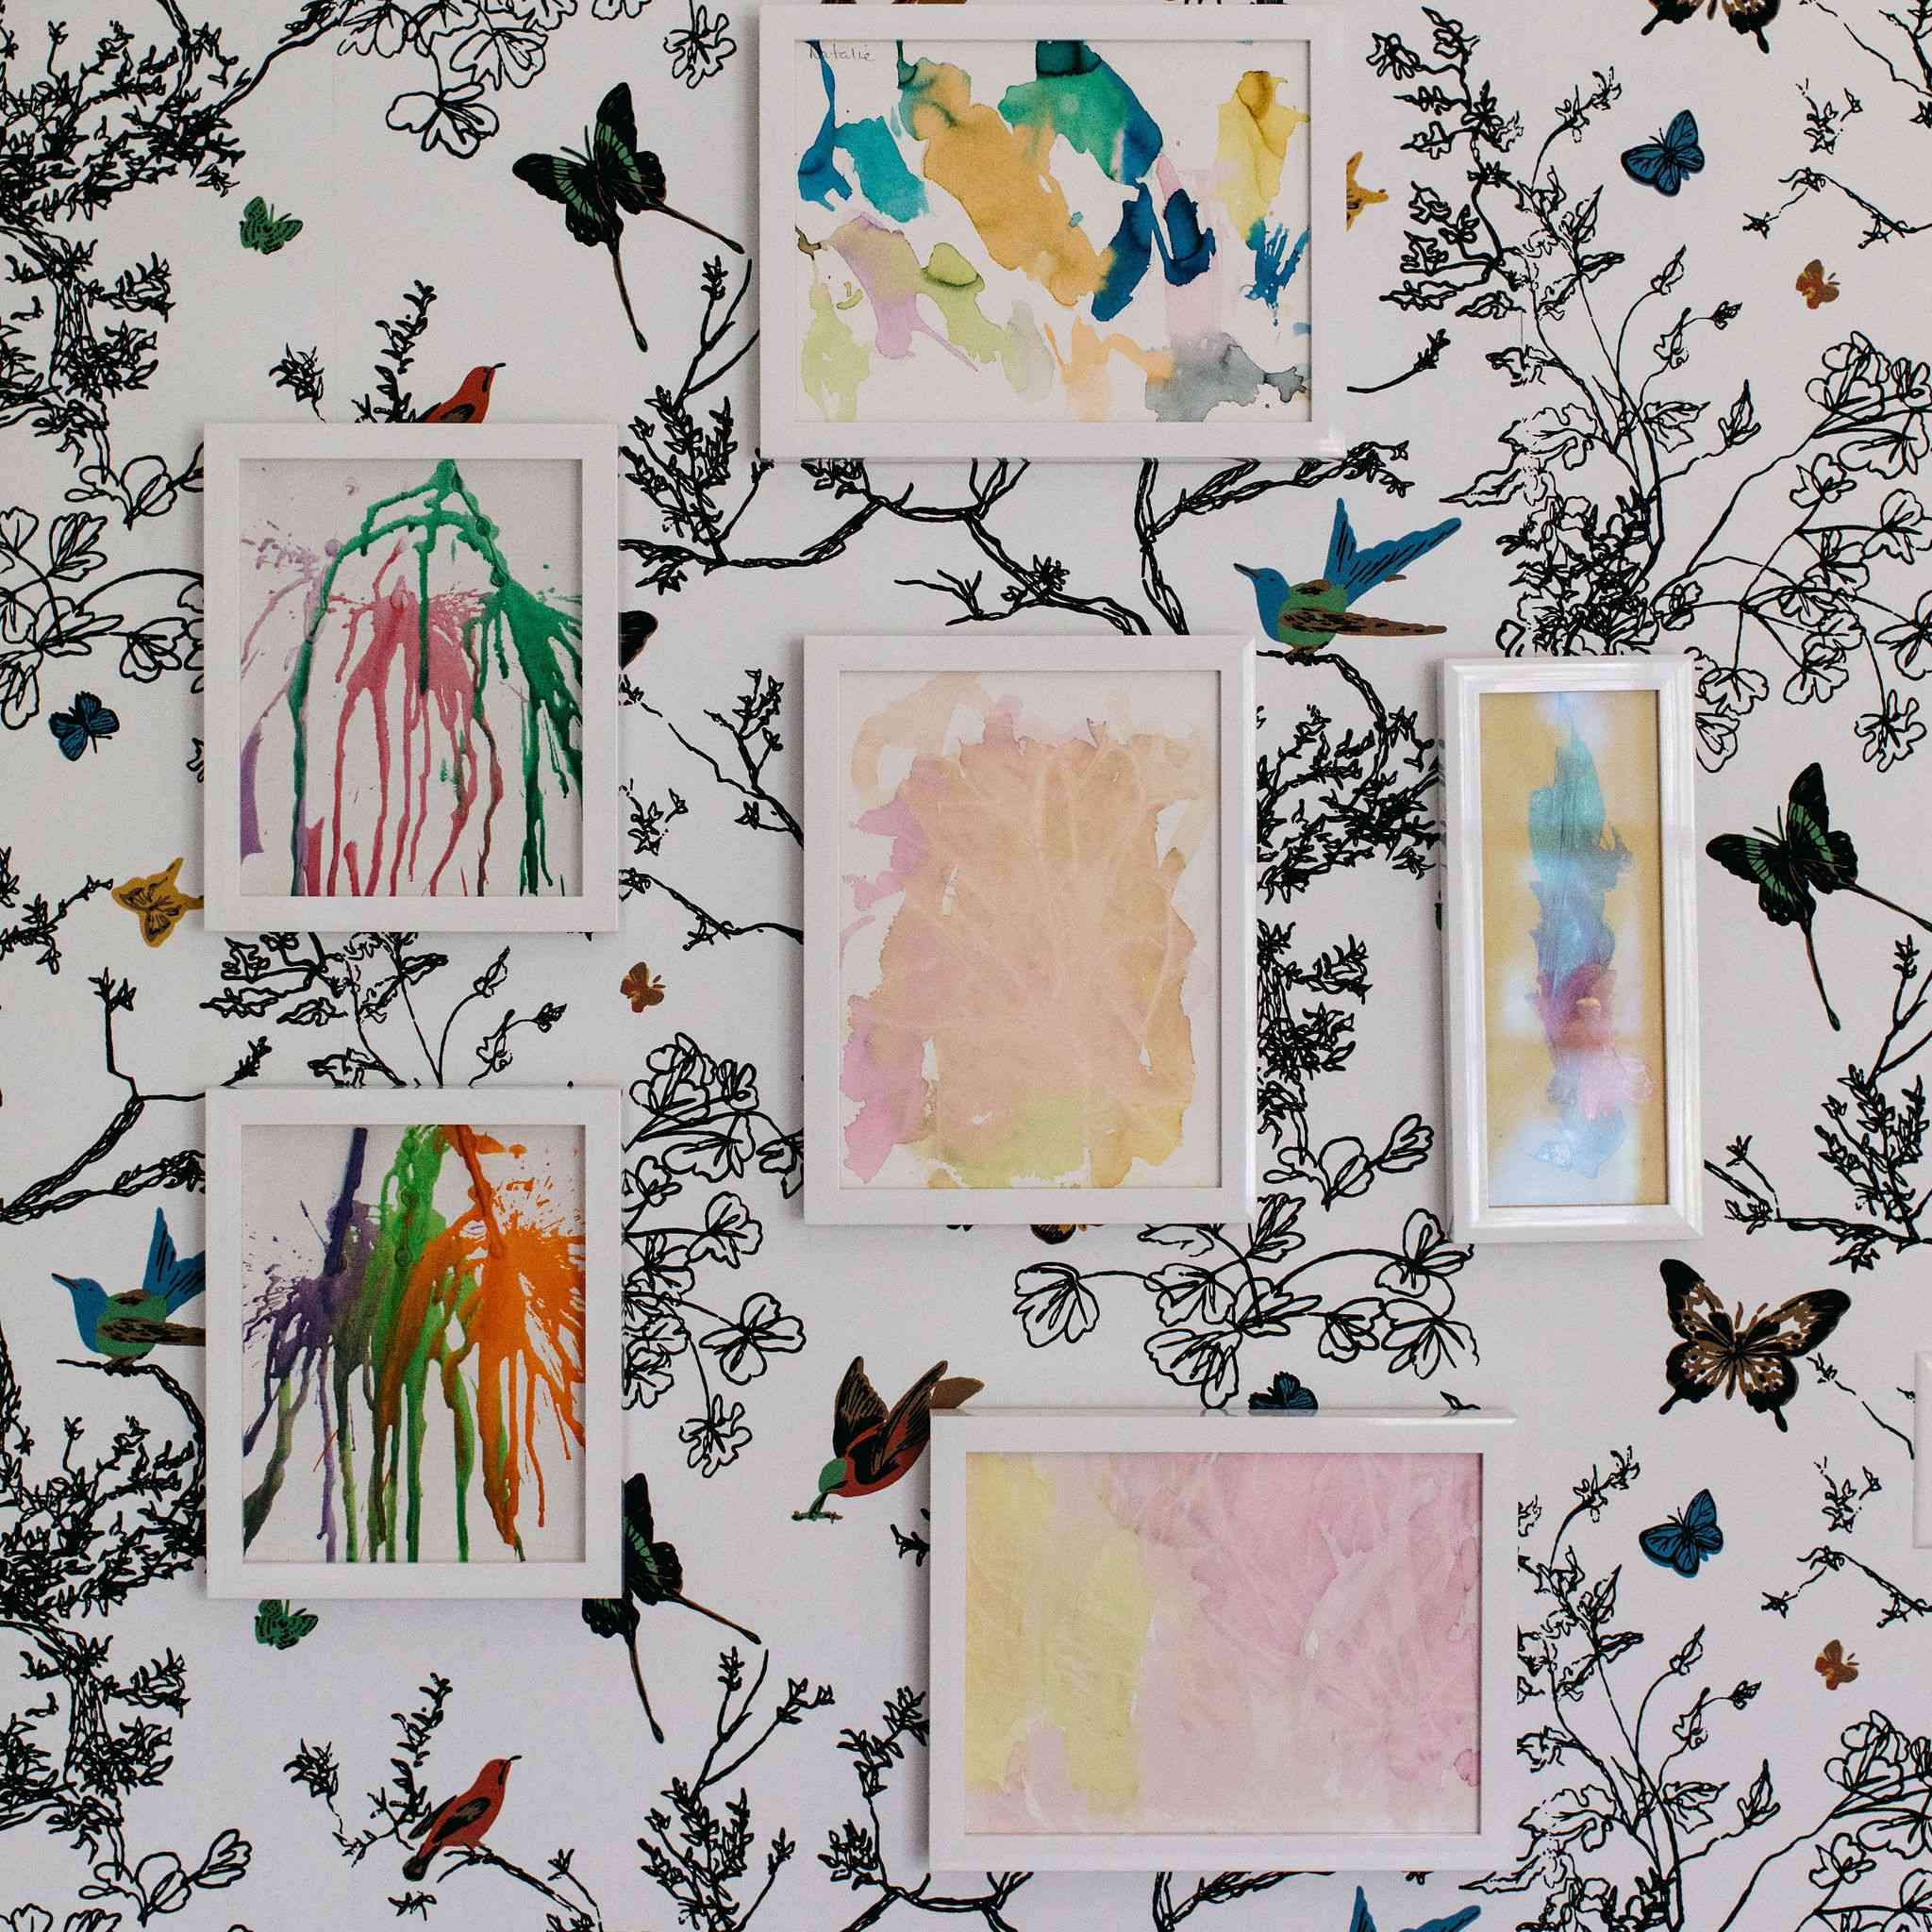 Watercolor art on wallpapered wall.